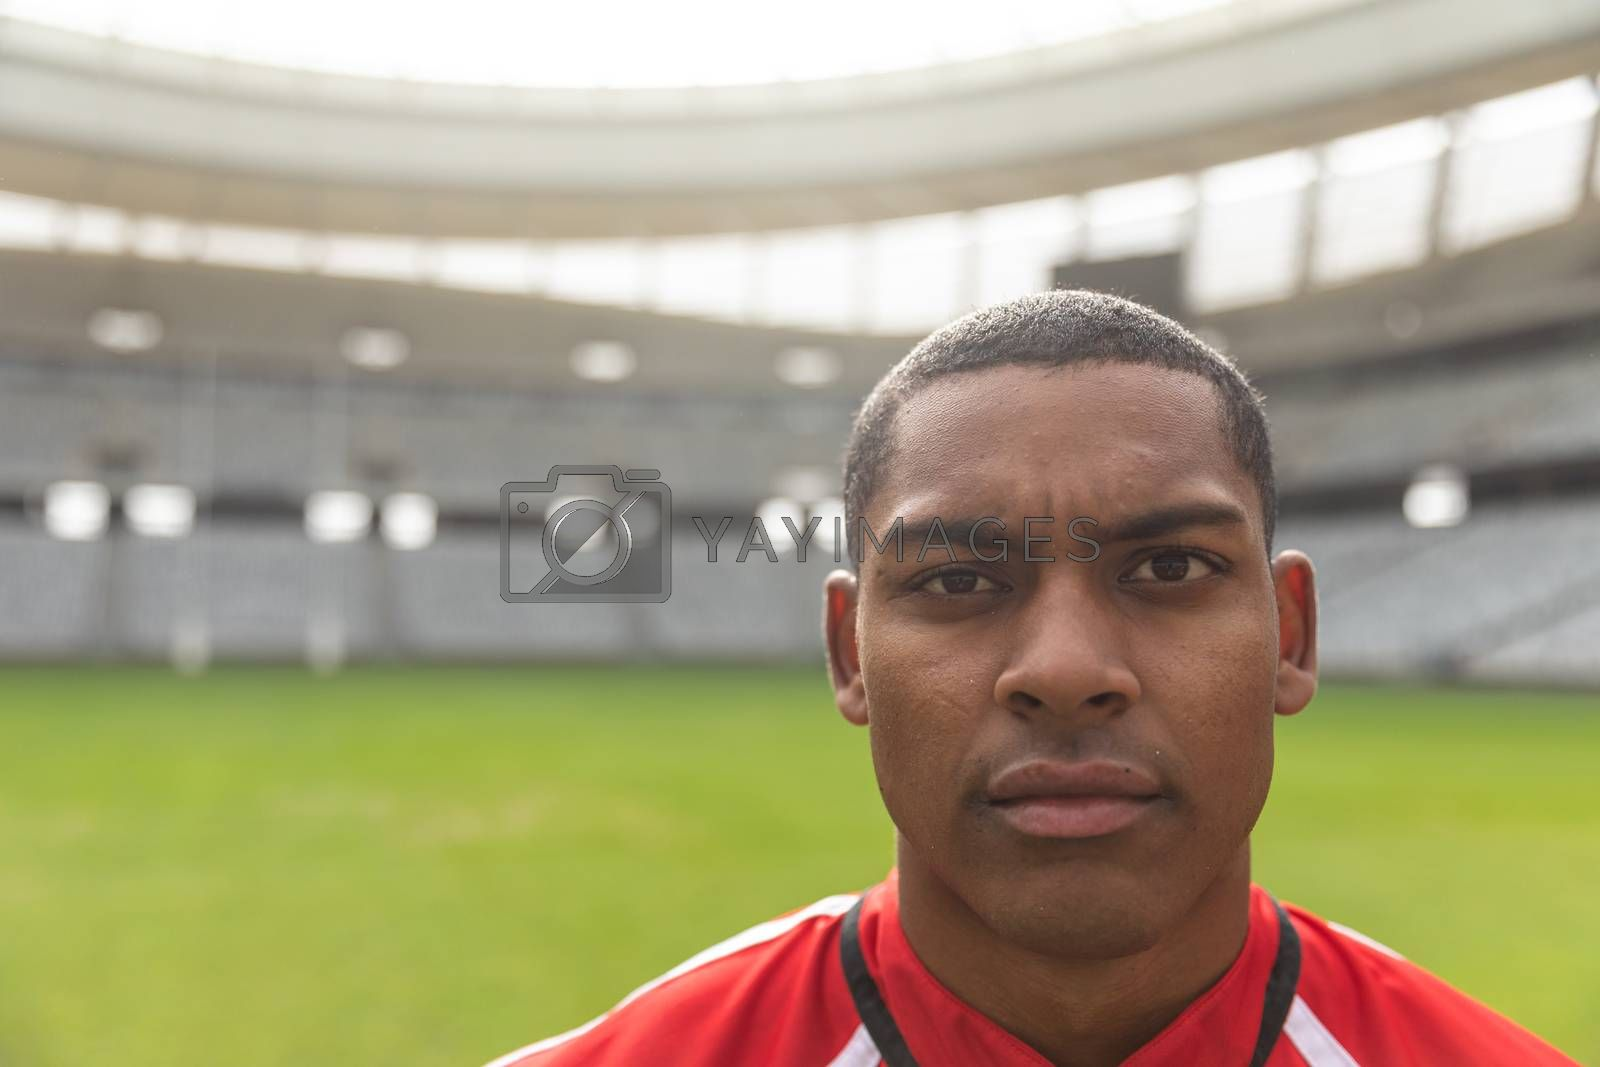 Portrait close up of handsome African American rugby player looking at camera in the stadium.